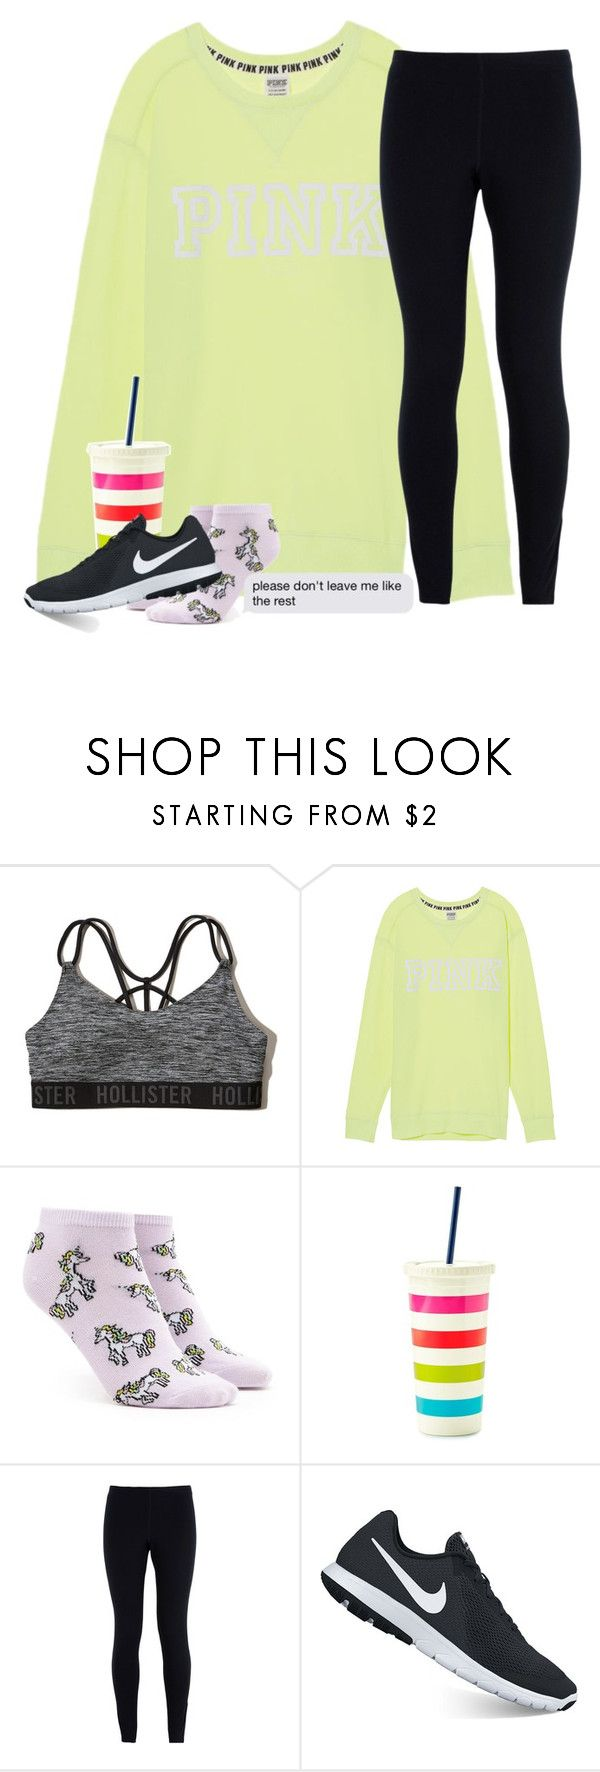 """""""No more counting dollars, we'll be counting stars✨"""" by southernstruttin ❤ liked on Polyvore featuring Hollister Co., Victoria's Secret, Forever 21, Kate Spade and NIKE"""